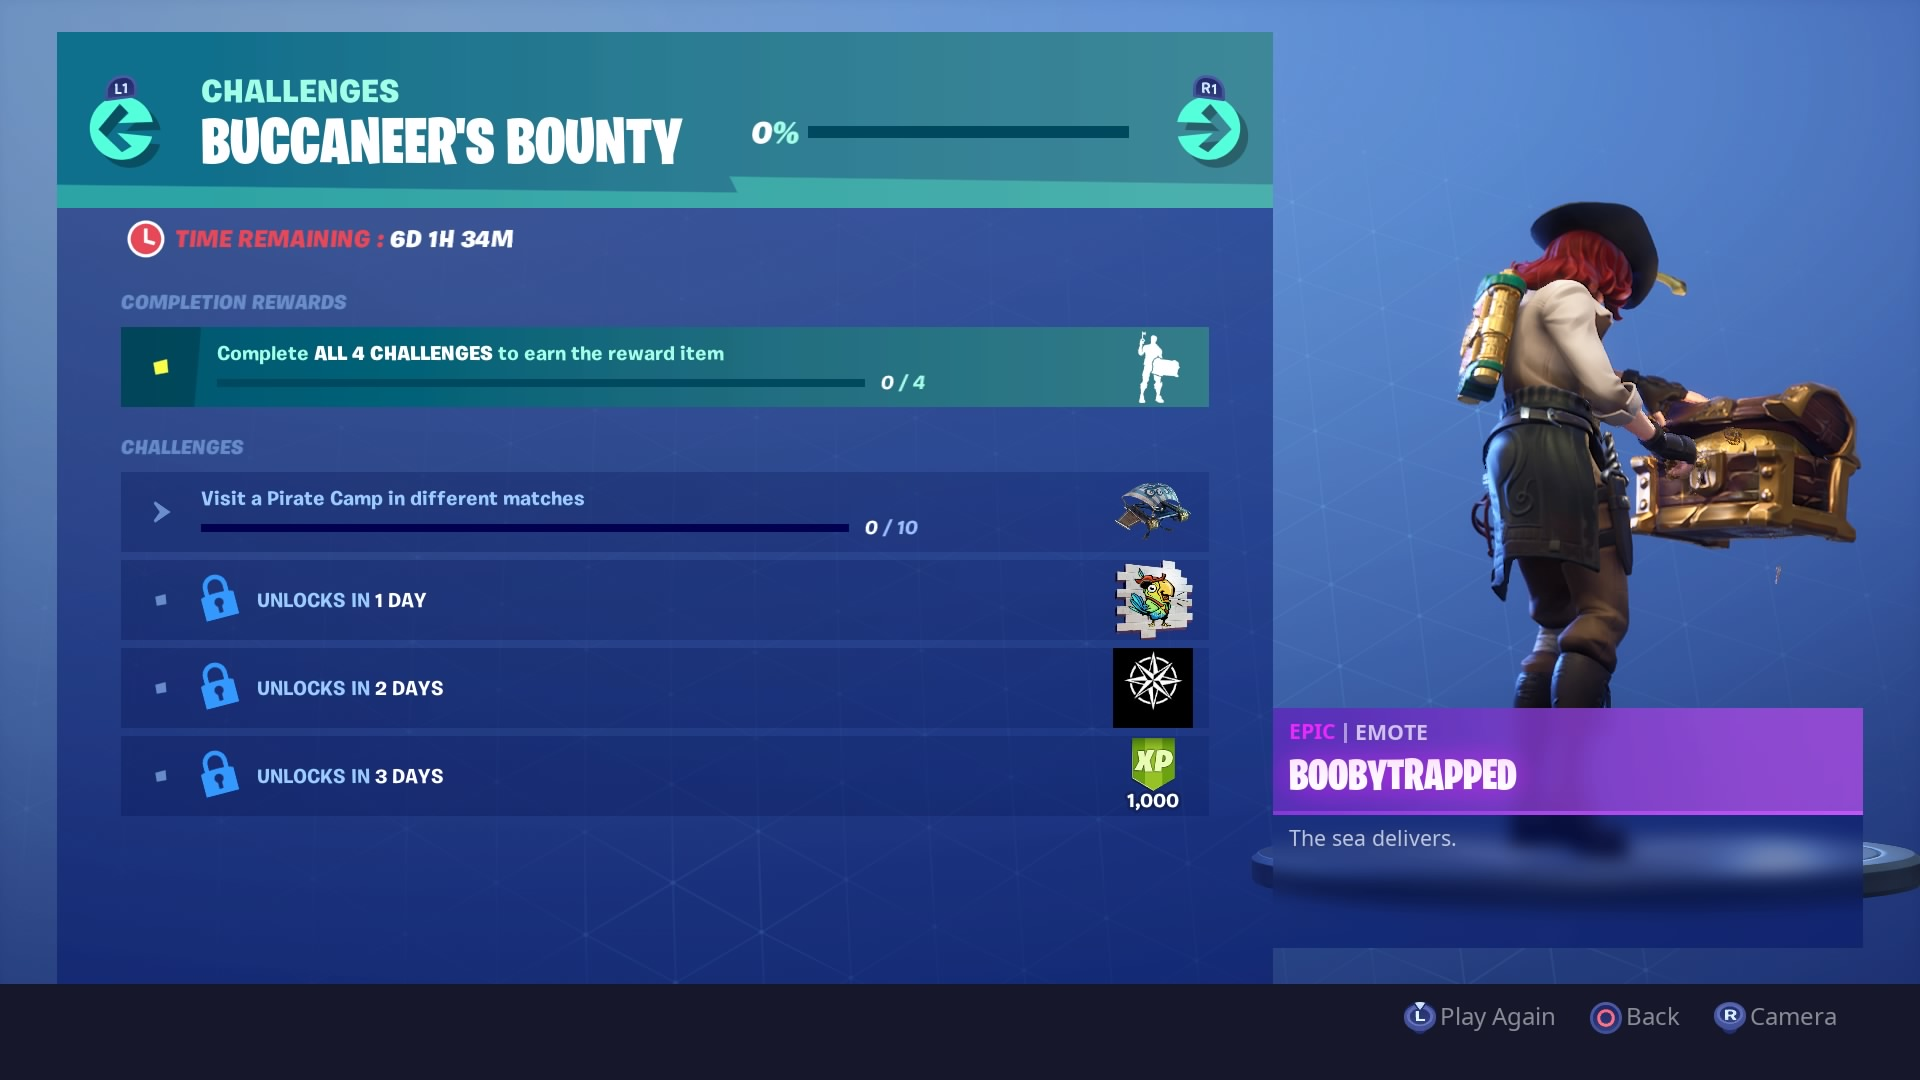 fortnite buccaneer s bounty rewards and challenges plunder glider and boobytrapped emote vg247 - when do fortnite challenges come out